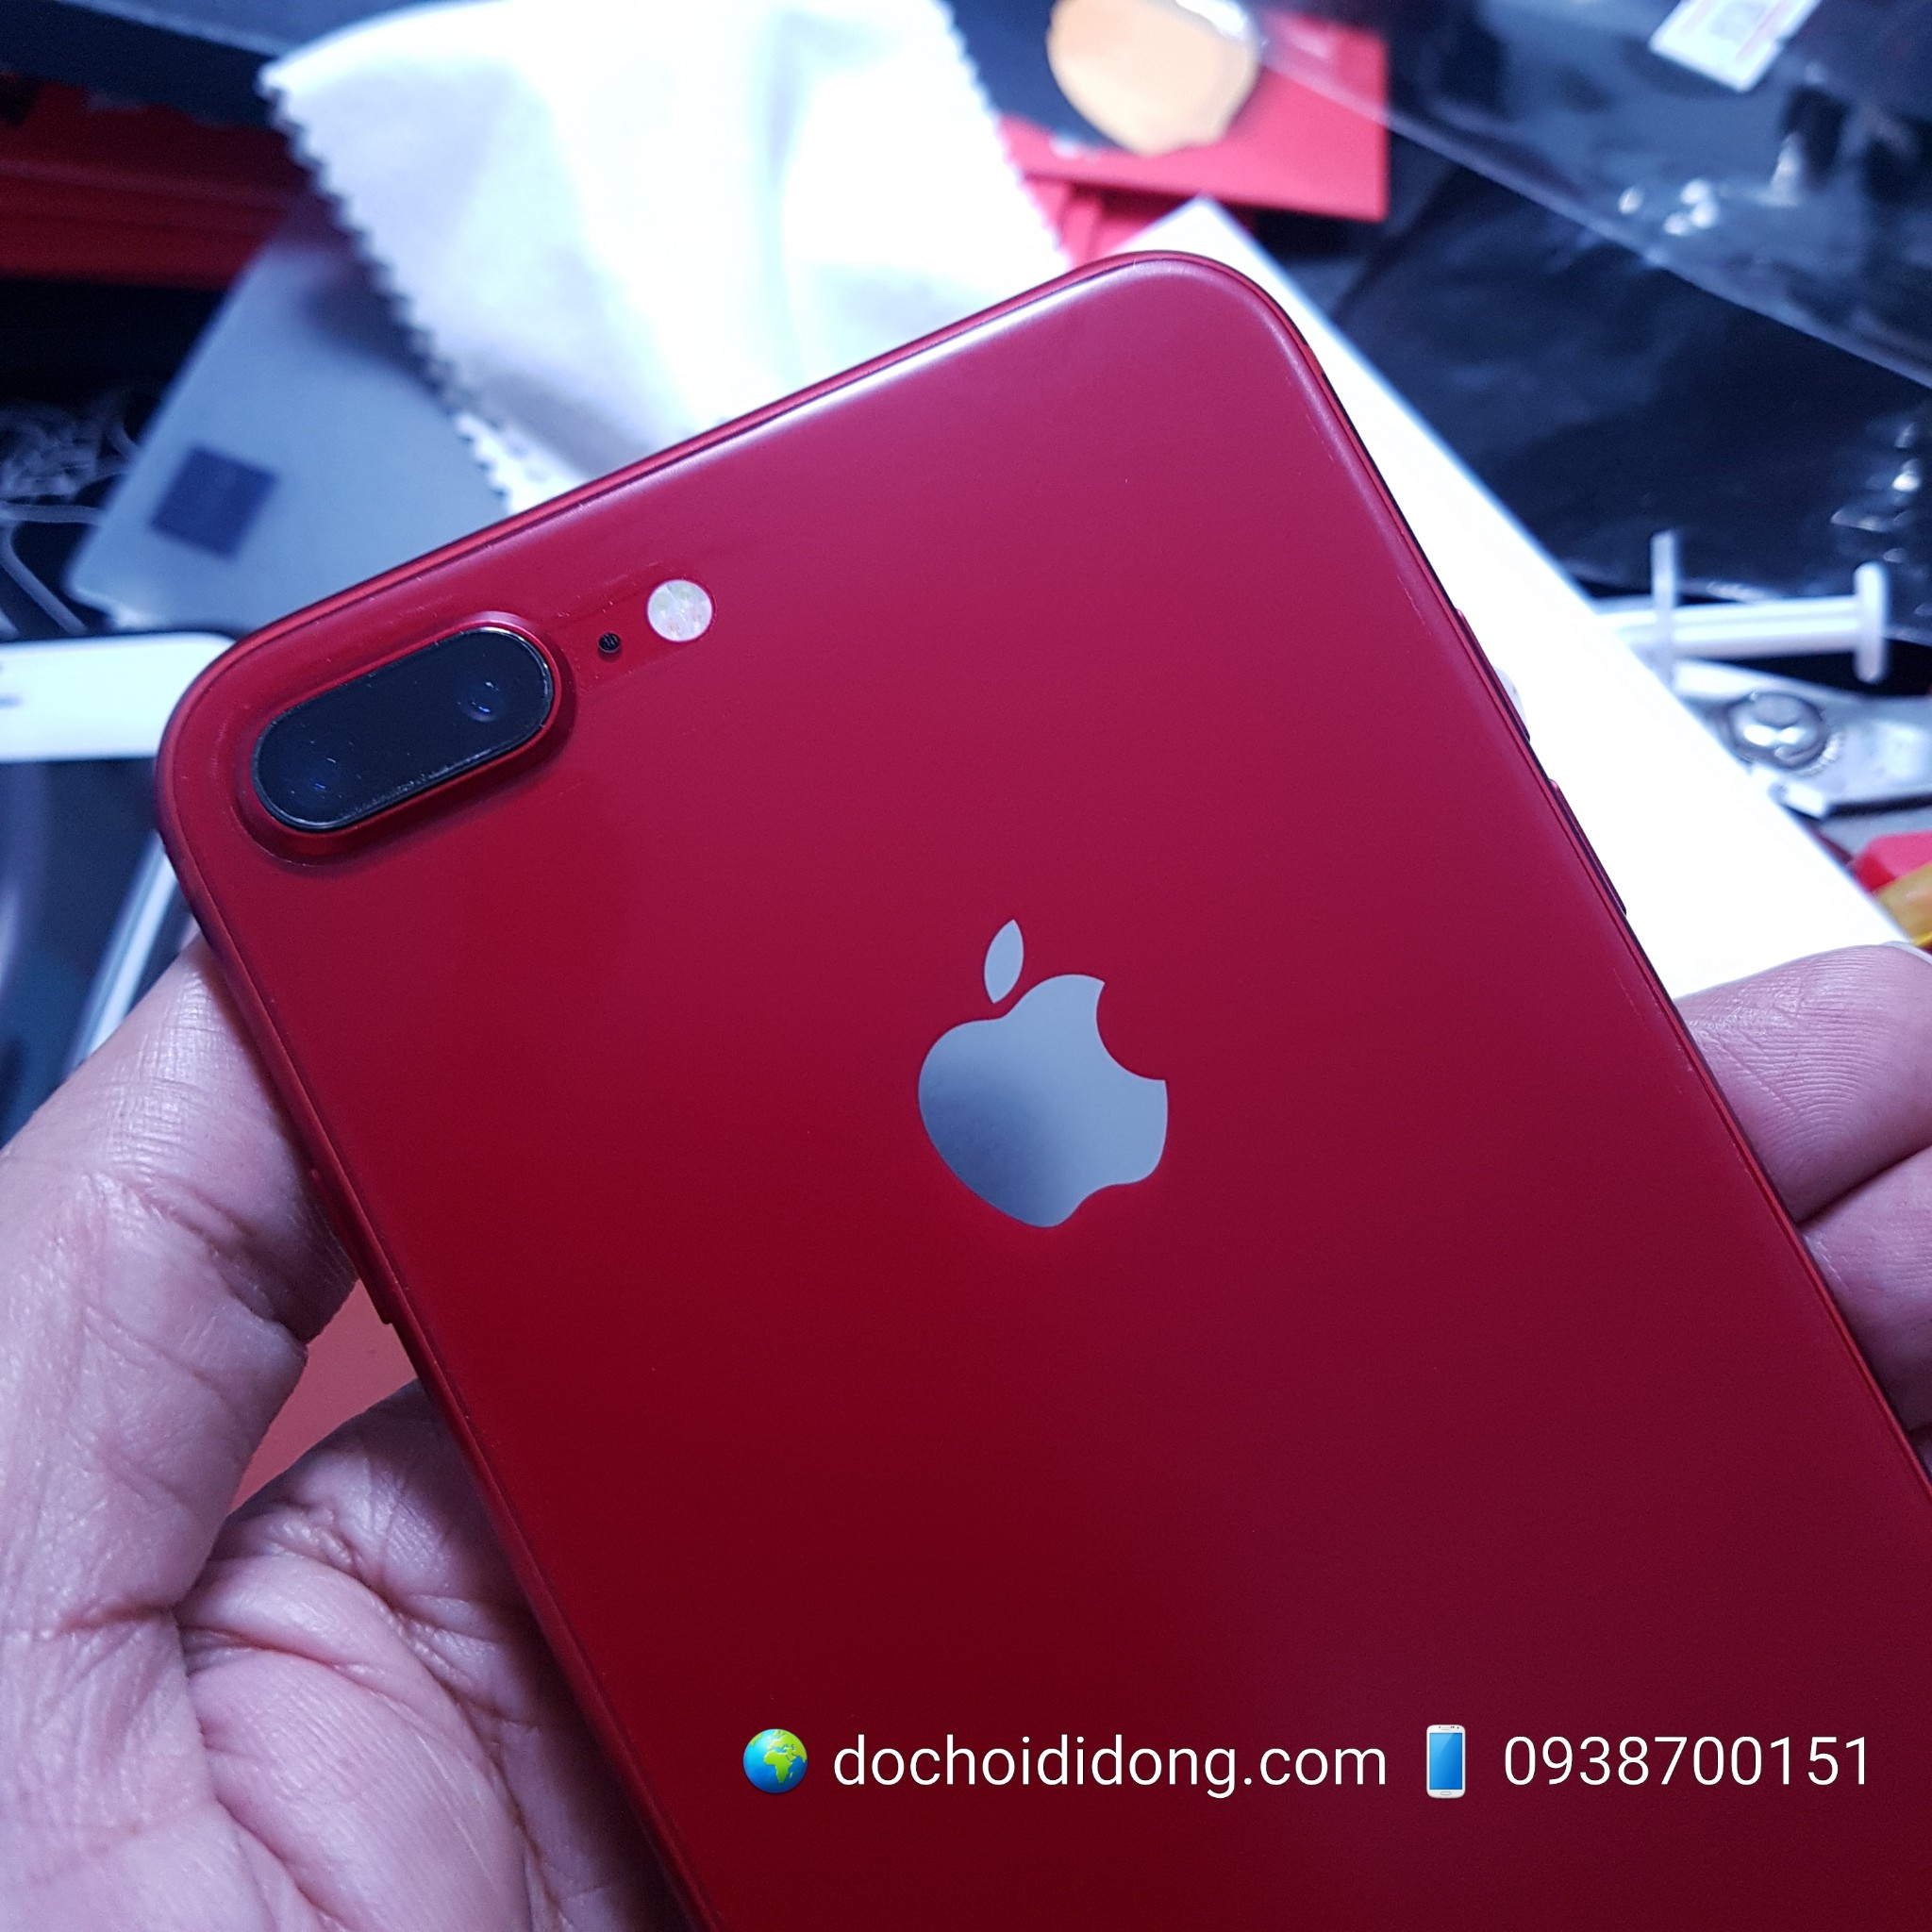 mieng-dan-lung-nham-trong-iphone-7-8-plus-matte-flexible